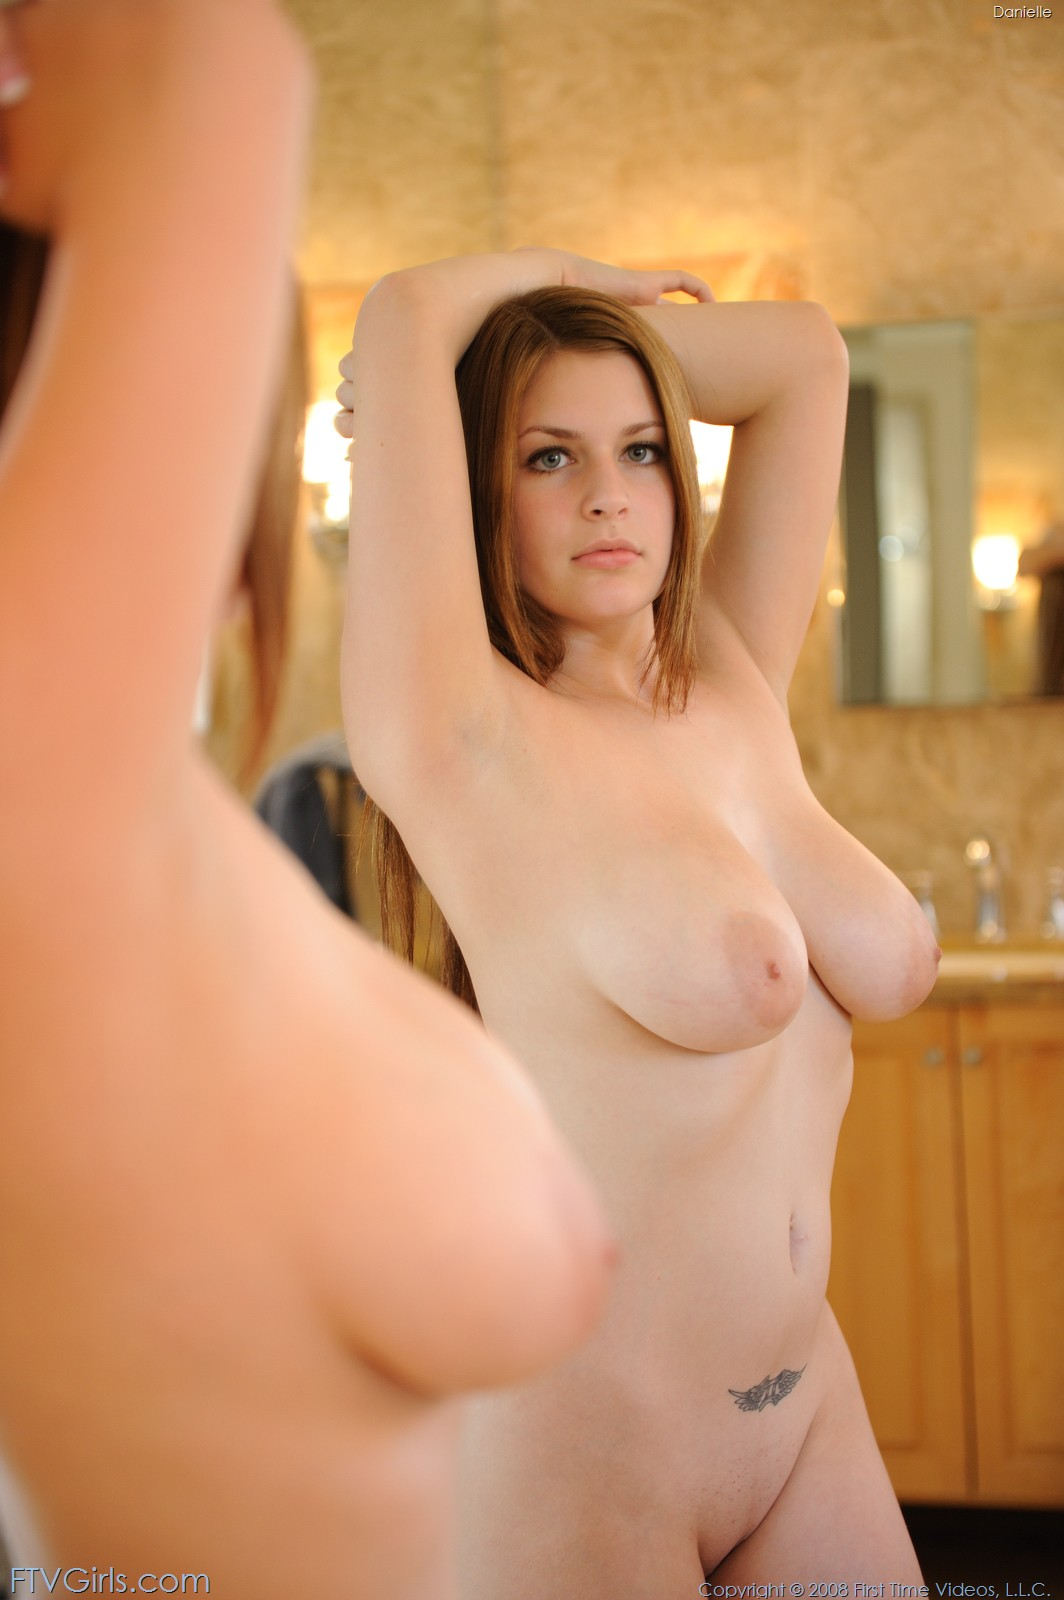 Has left Real everyday girls nude